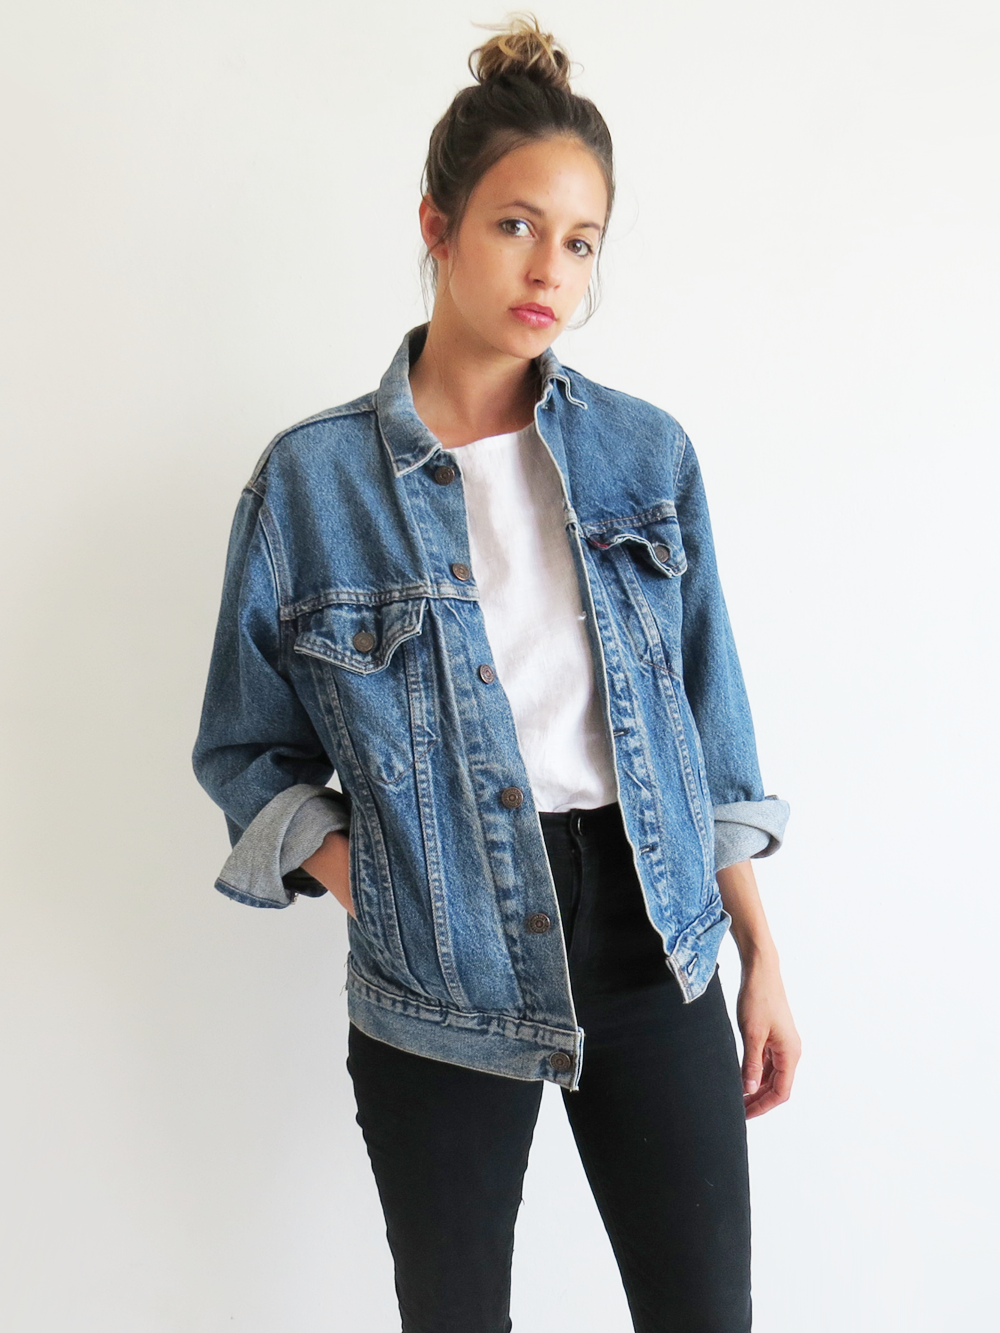 dc63956ebed57 Best Summer Jackets for every outfit Denim Jacket Outfit Oversized